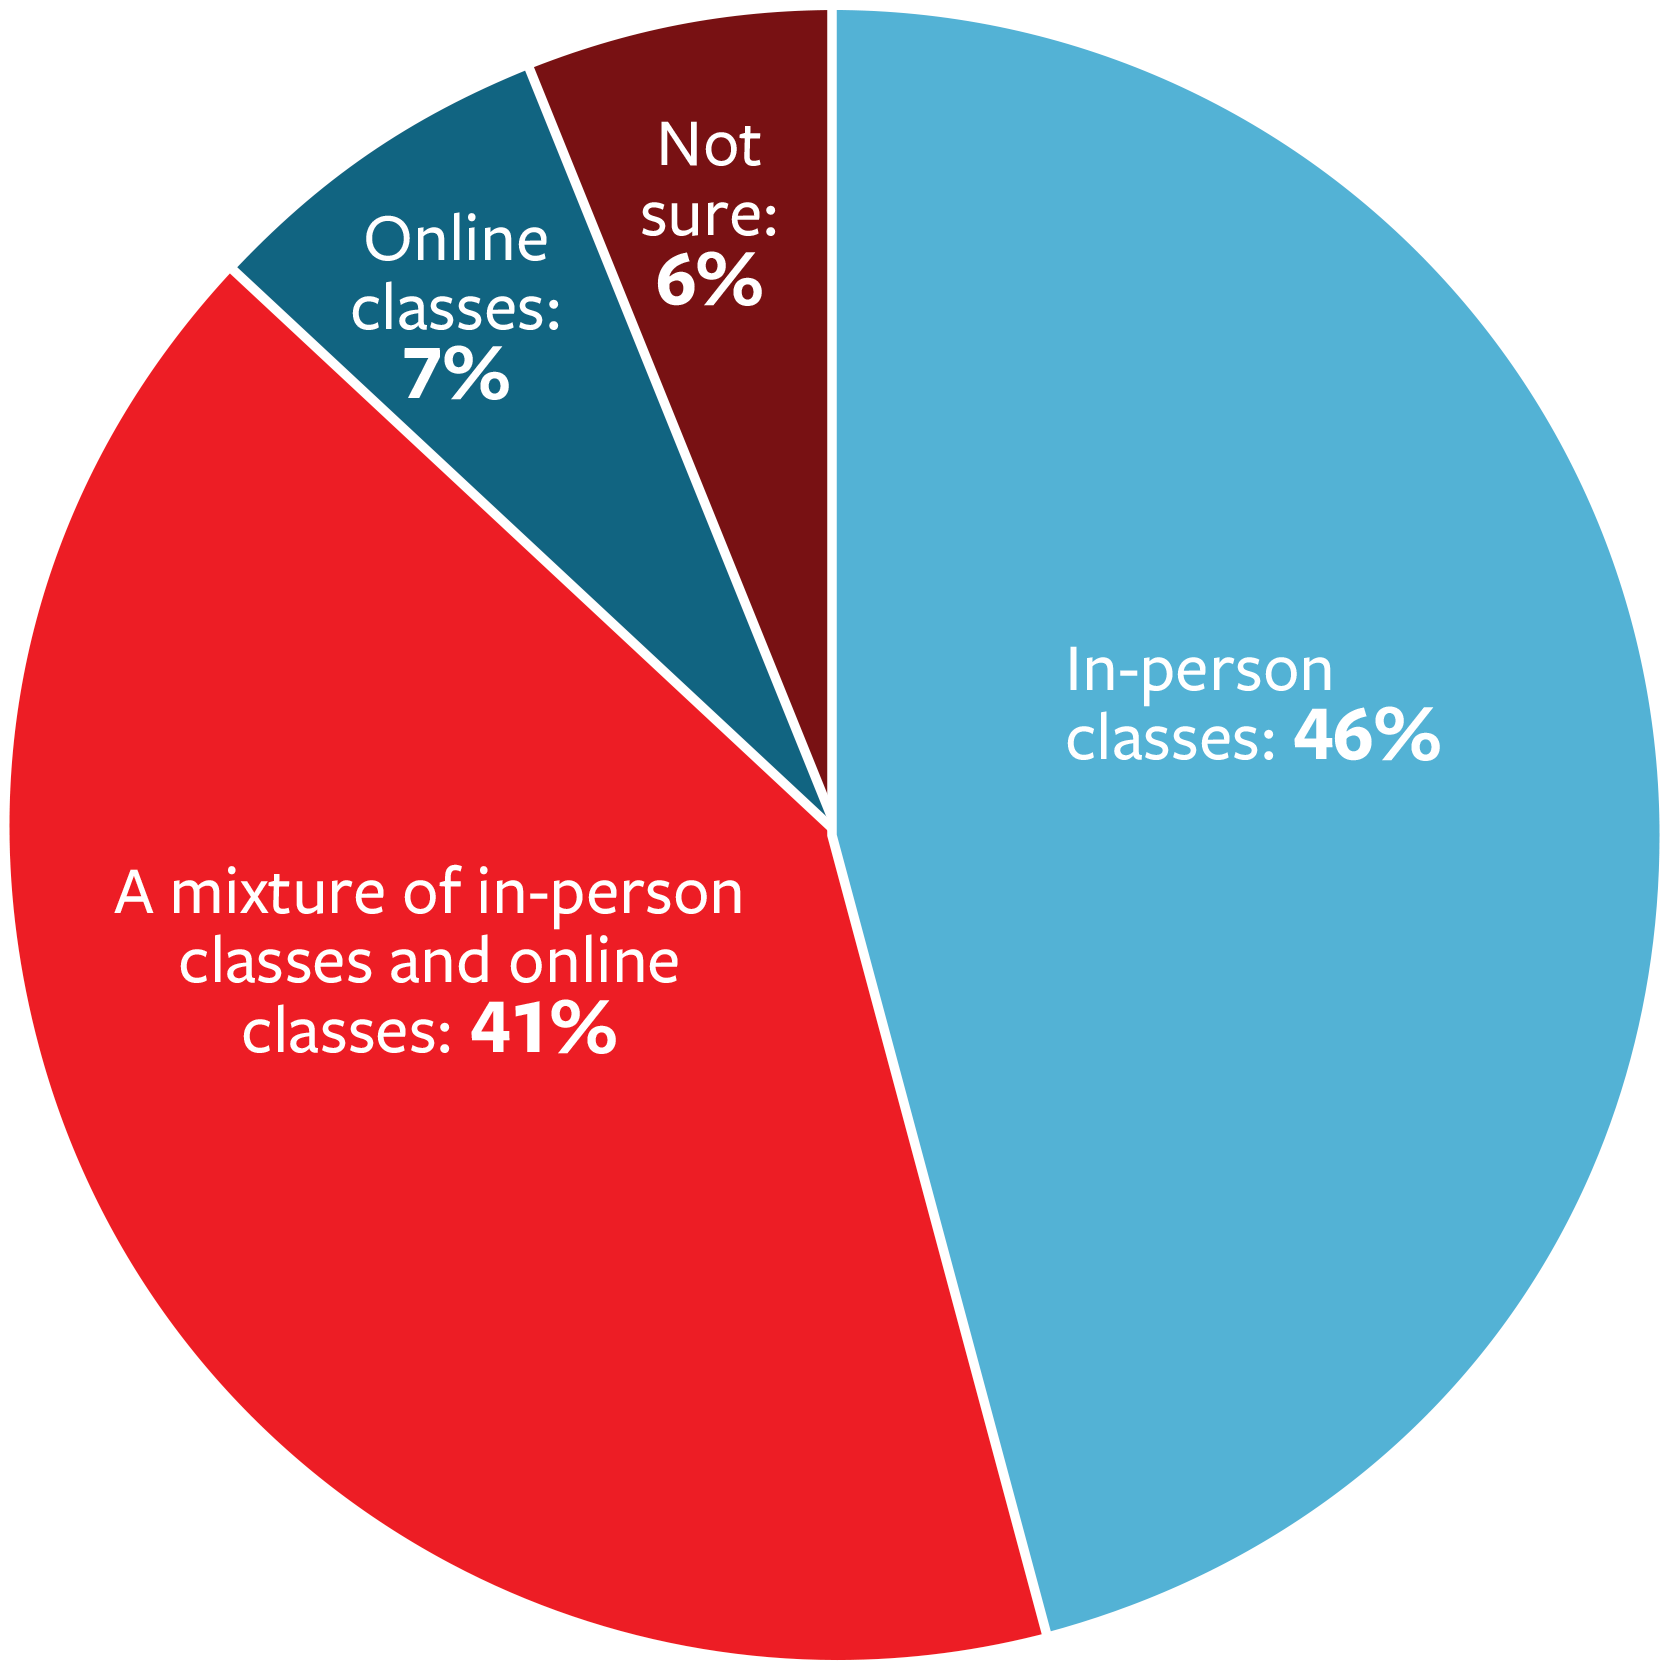 In-person classes: 46%; A mix of in-person and online classes: 41%; Online classes: 7%; Not sure: 6%